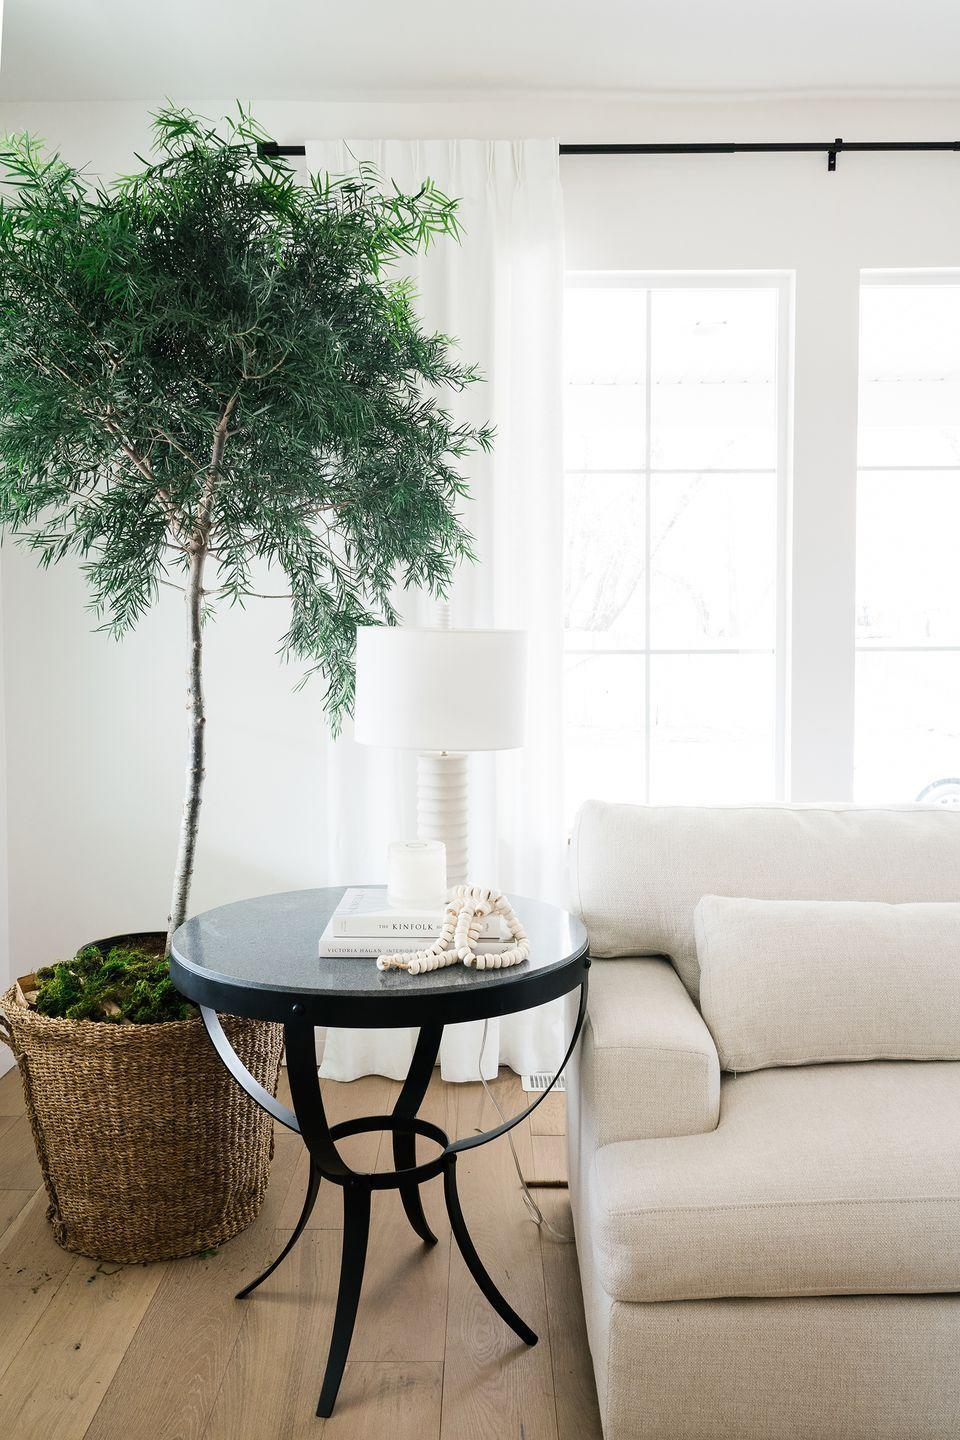 """<p>""""When it comes to white paint, we like to use the same shades throughout for the walls, trim, cabinets and ceilings,"""" says House of Jade Interiors' <a href=""""https://houseofjadeinteriors.com/"""" rel=""""nofollow noopener"""" target=""""_blank"""" data-ylk=""""slk:Kirsten Krason"""" class=""""link rapid-noclick-resp"""">Kirsten Krason</a>, noting that Sherwin-Williams' Snowbound is the perfect hue.</p><p><a class=""""link rapid-noclick-resp"""" href=""""https://www.sherwin-williams.com/homeowners/color/find-and-explore-colors/paint-colors-by-family/SW7004-snowbound"""" rel=""""nofollow noopener"""" target=""""_blank"""" data-ylk=""""slk:SHOP NOW"""">SHOP NOW </a></p>"""